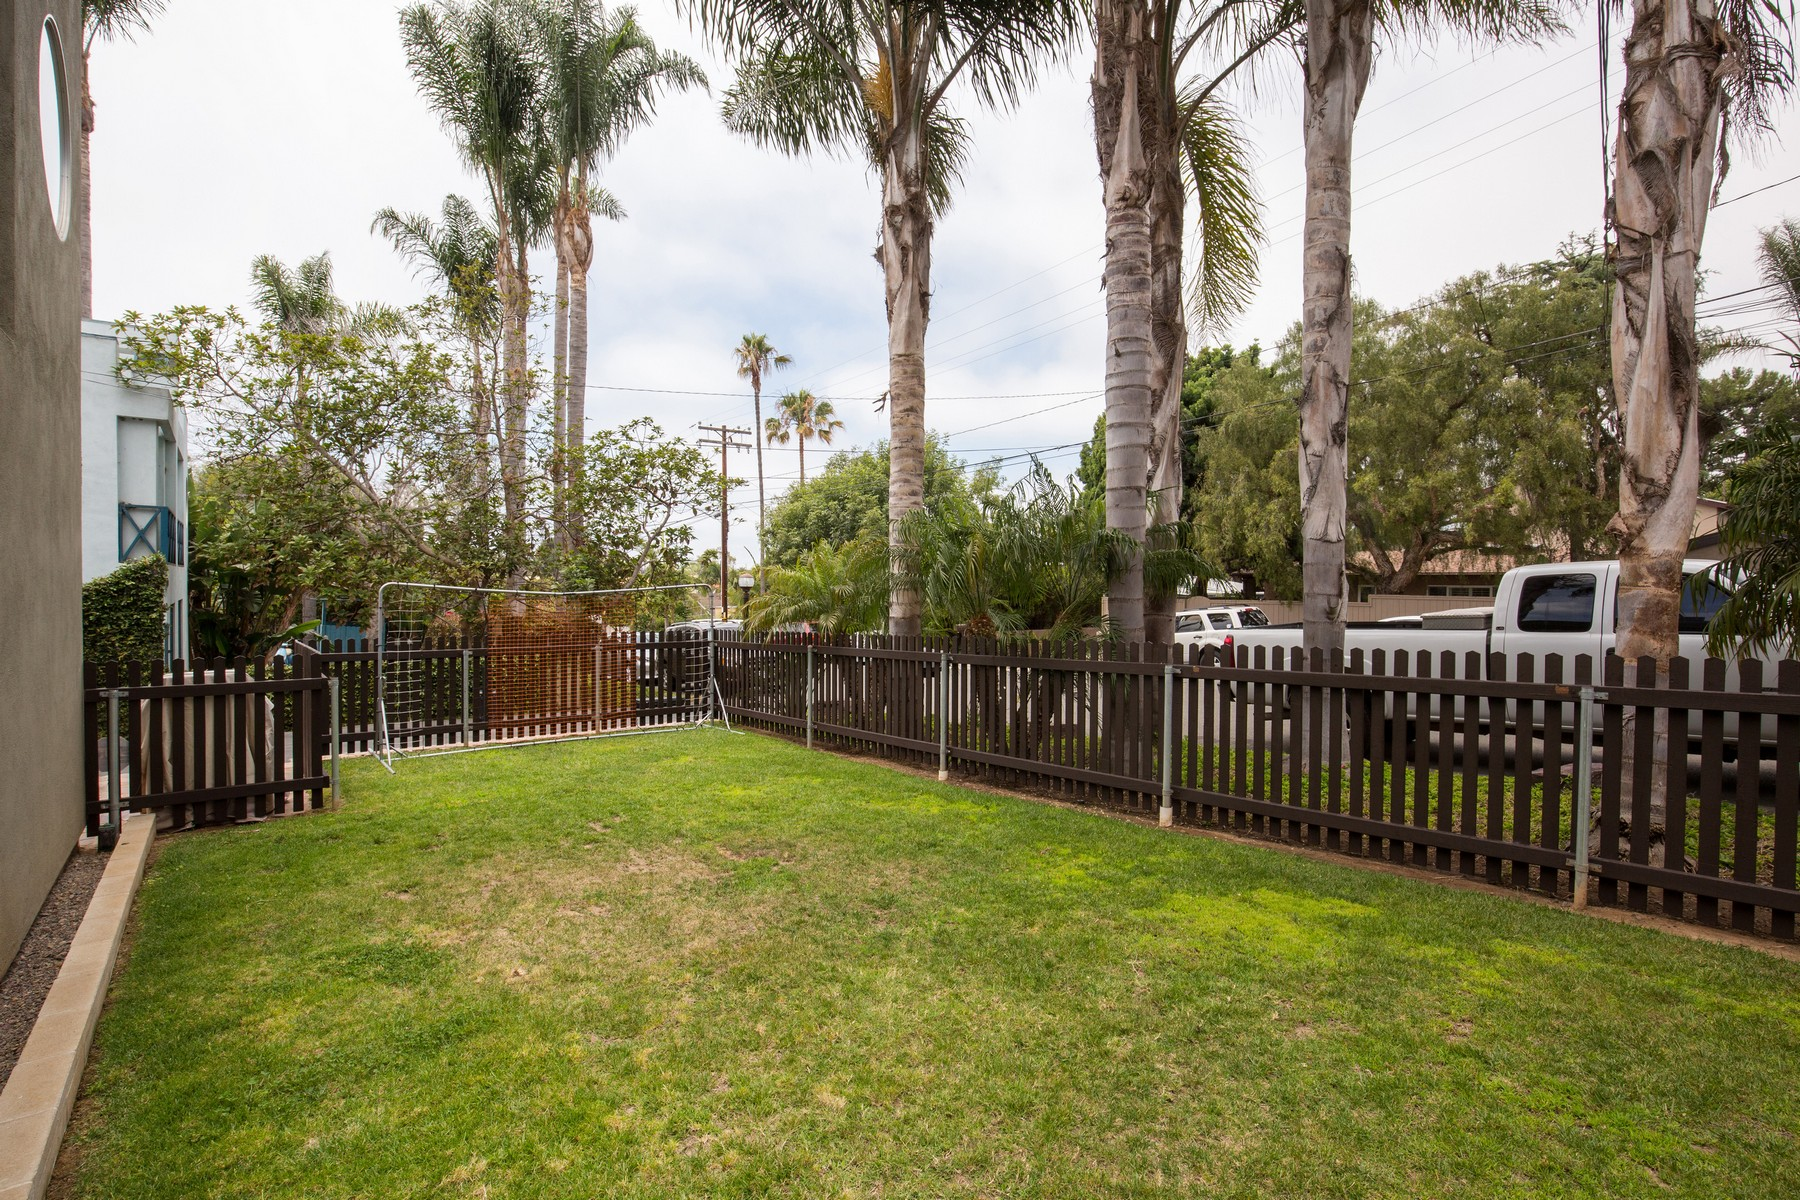 Additional photo for property listing at 251 Glaucus street  Encinitas, Californie 92024 États-Unis